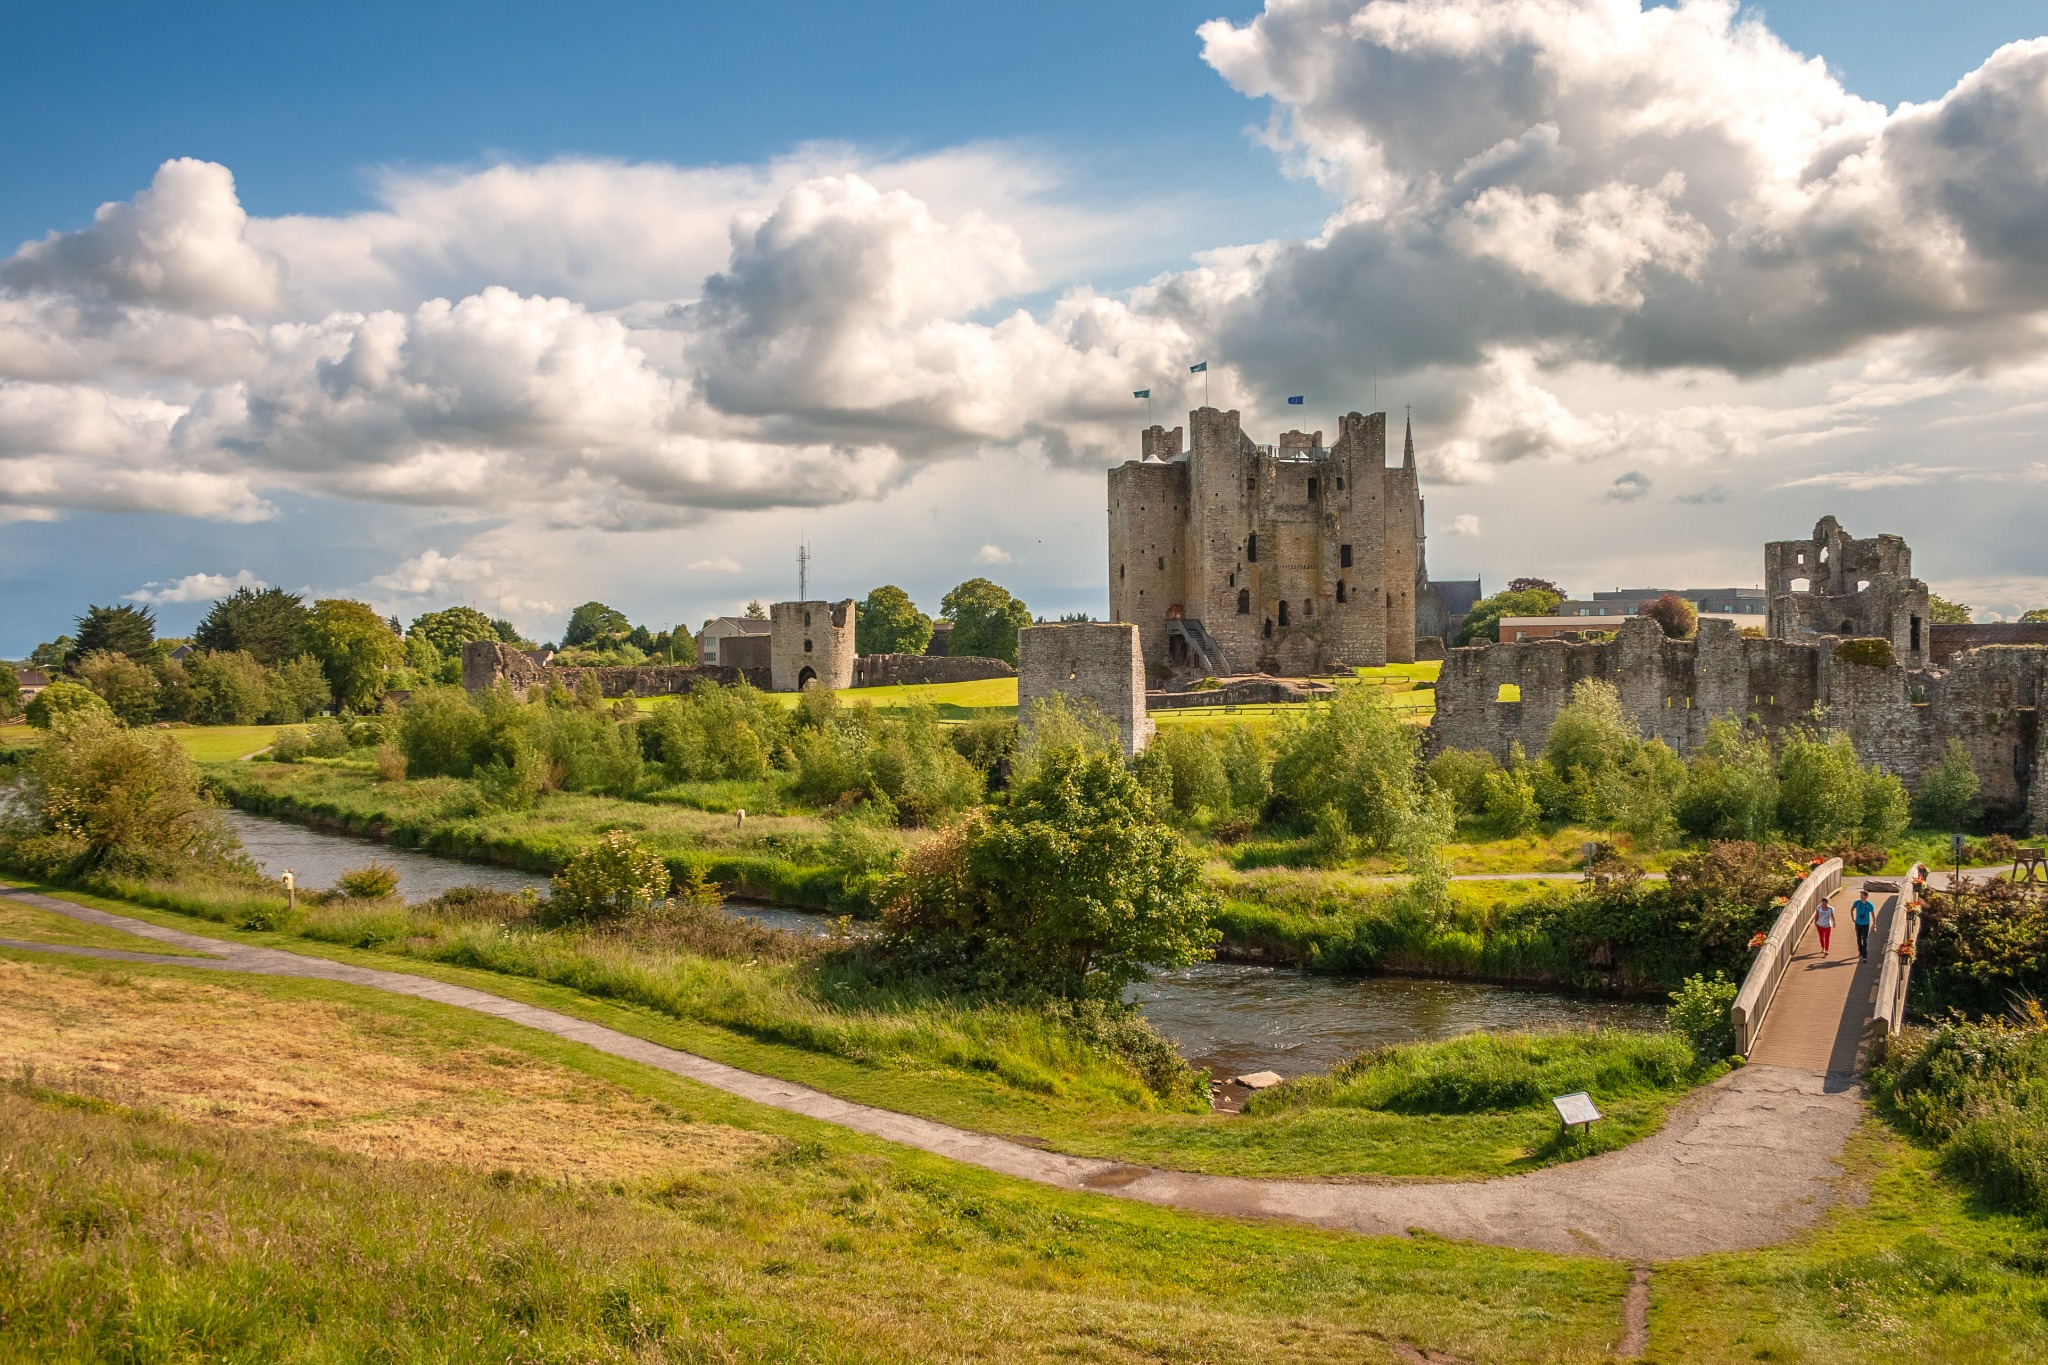 Trim Castle, one of the many castles in Ireland.